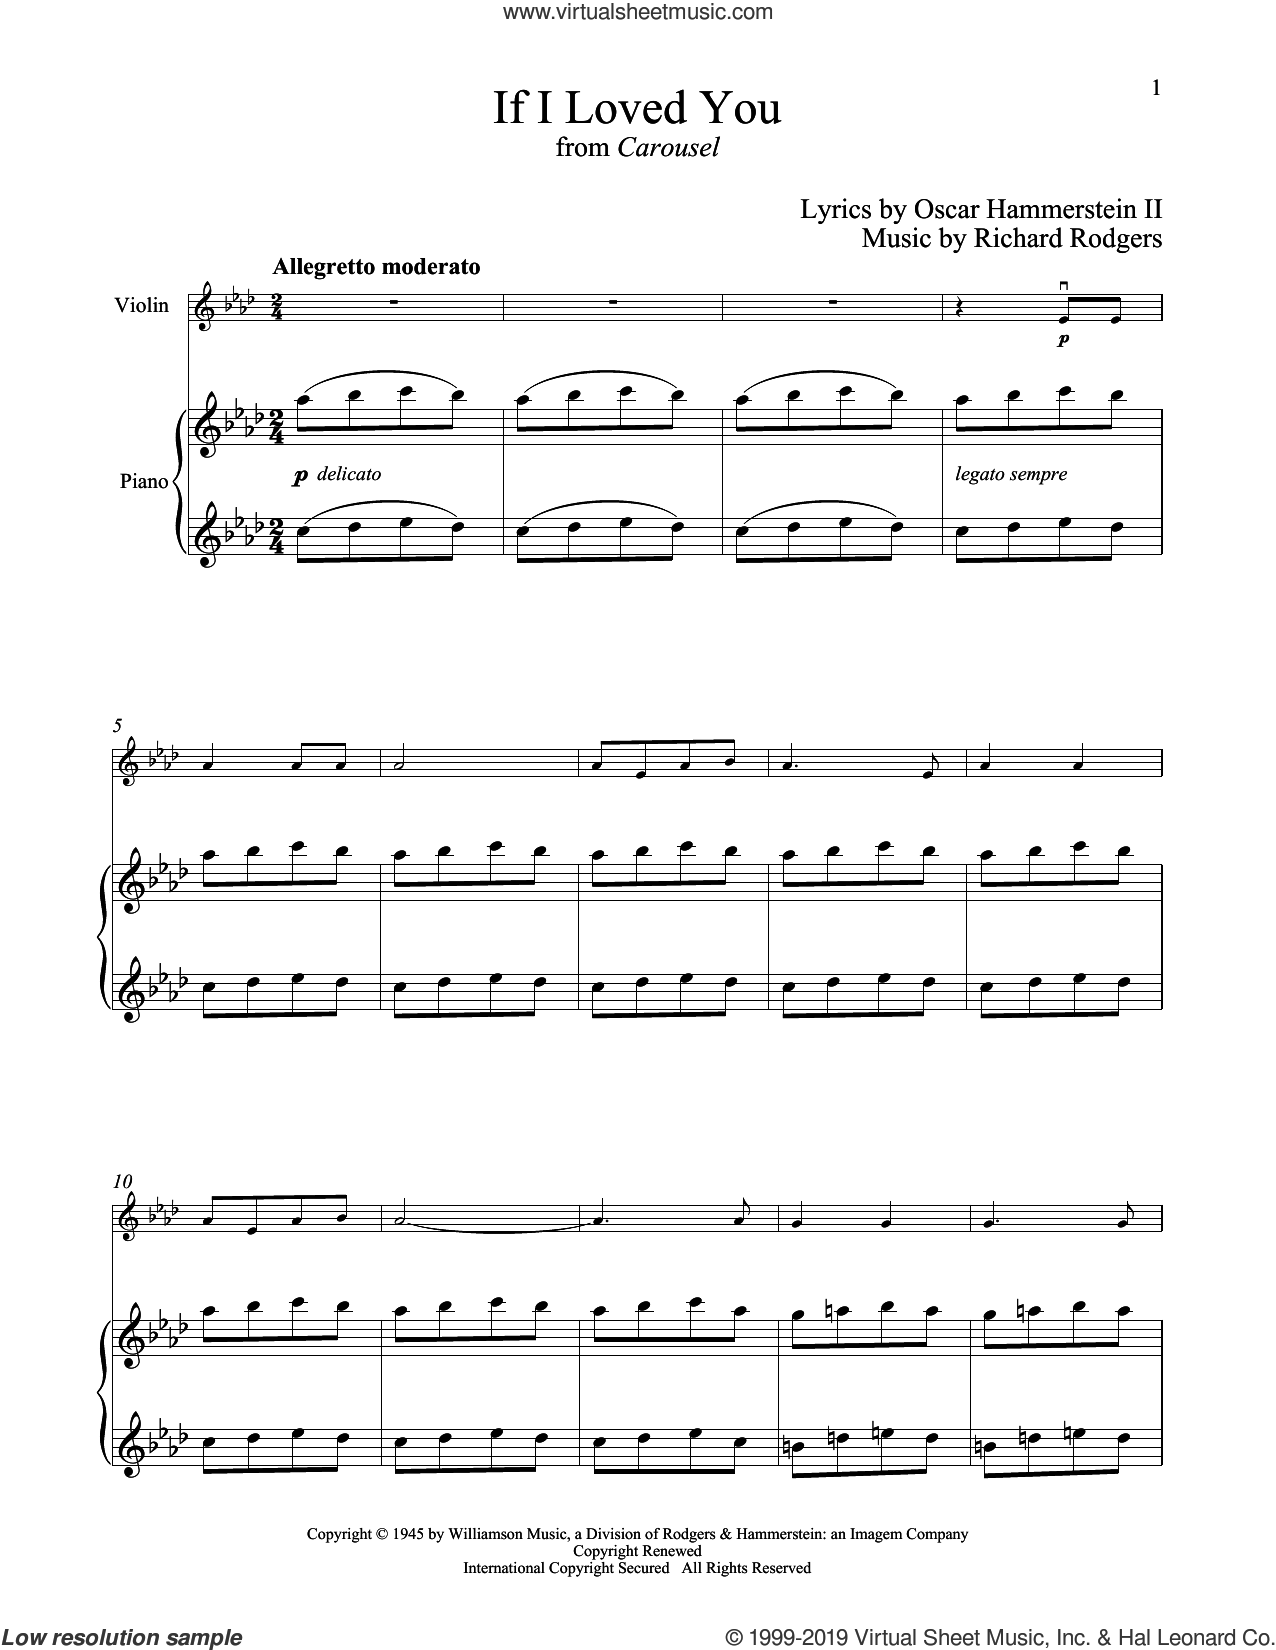 If I Loved You (from Carousel) sheet music for violin and piano by Rodgers & Hammerstein, Oscar II Hammerstein and Richard Rodgers, intermediate skill level